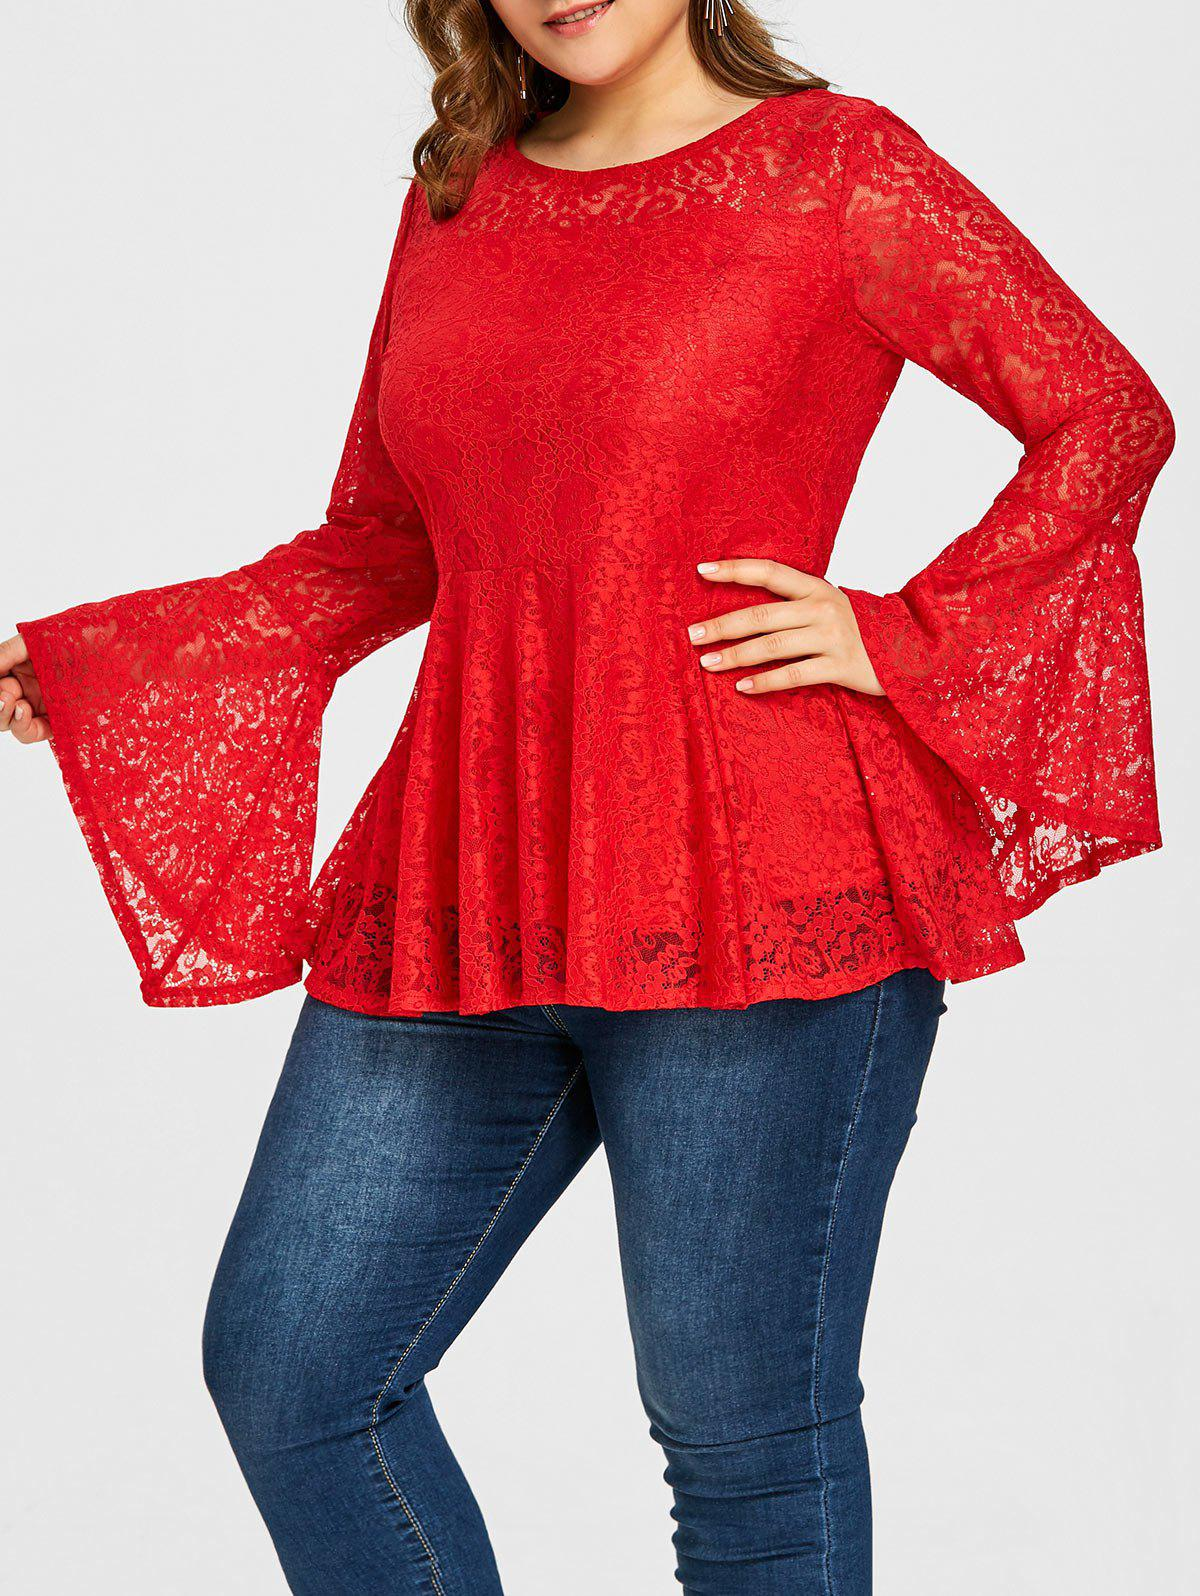 Shops Translucent Plus Size Lace Peplum Blouse